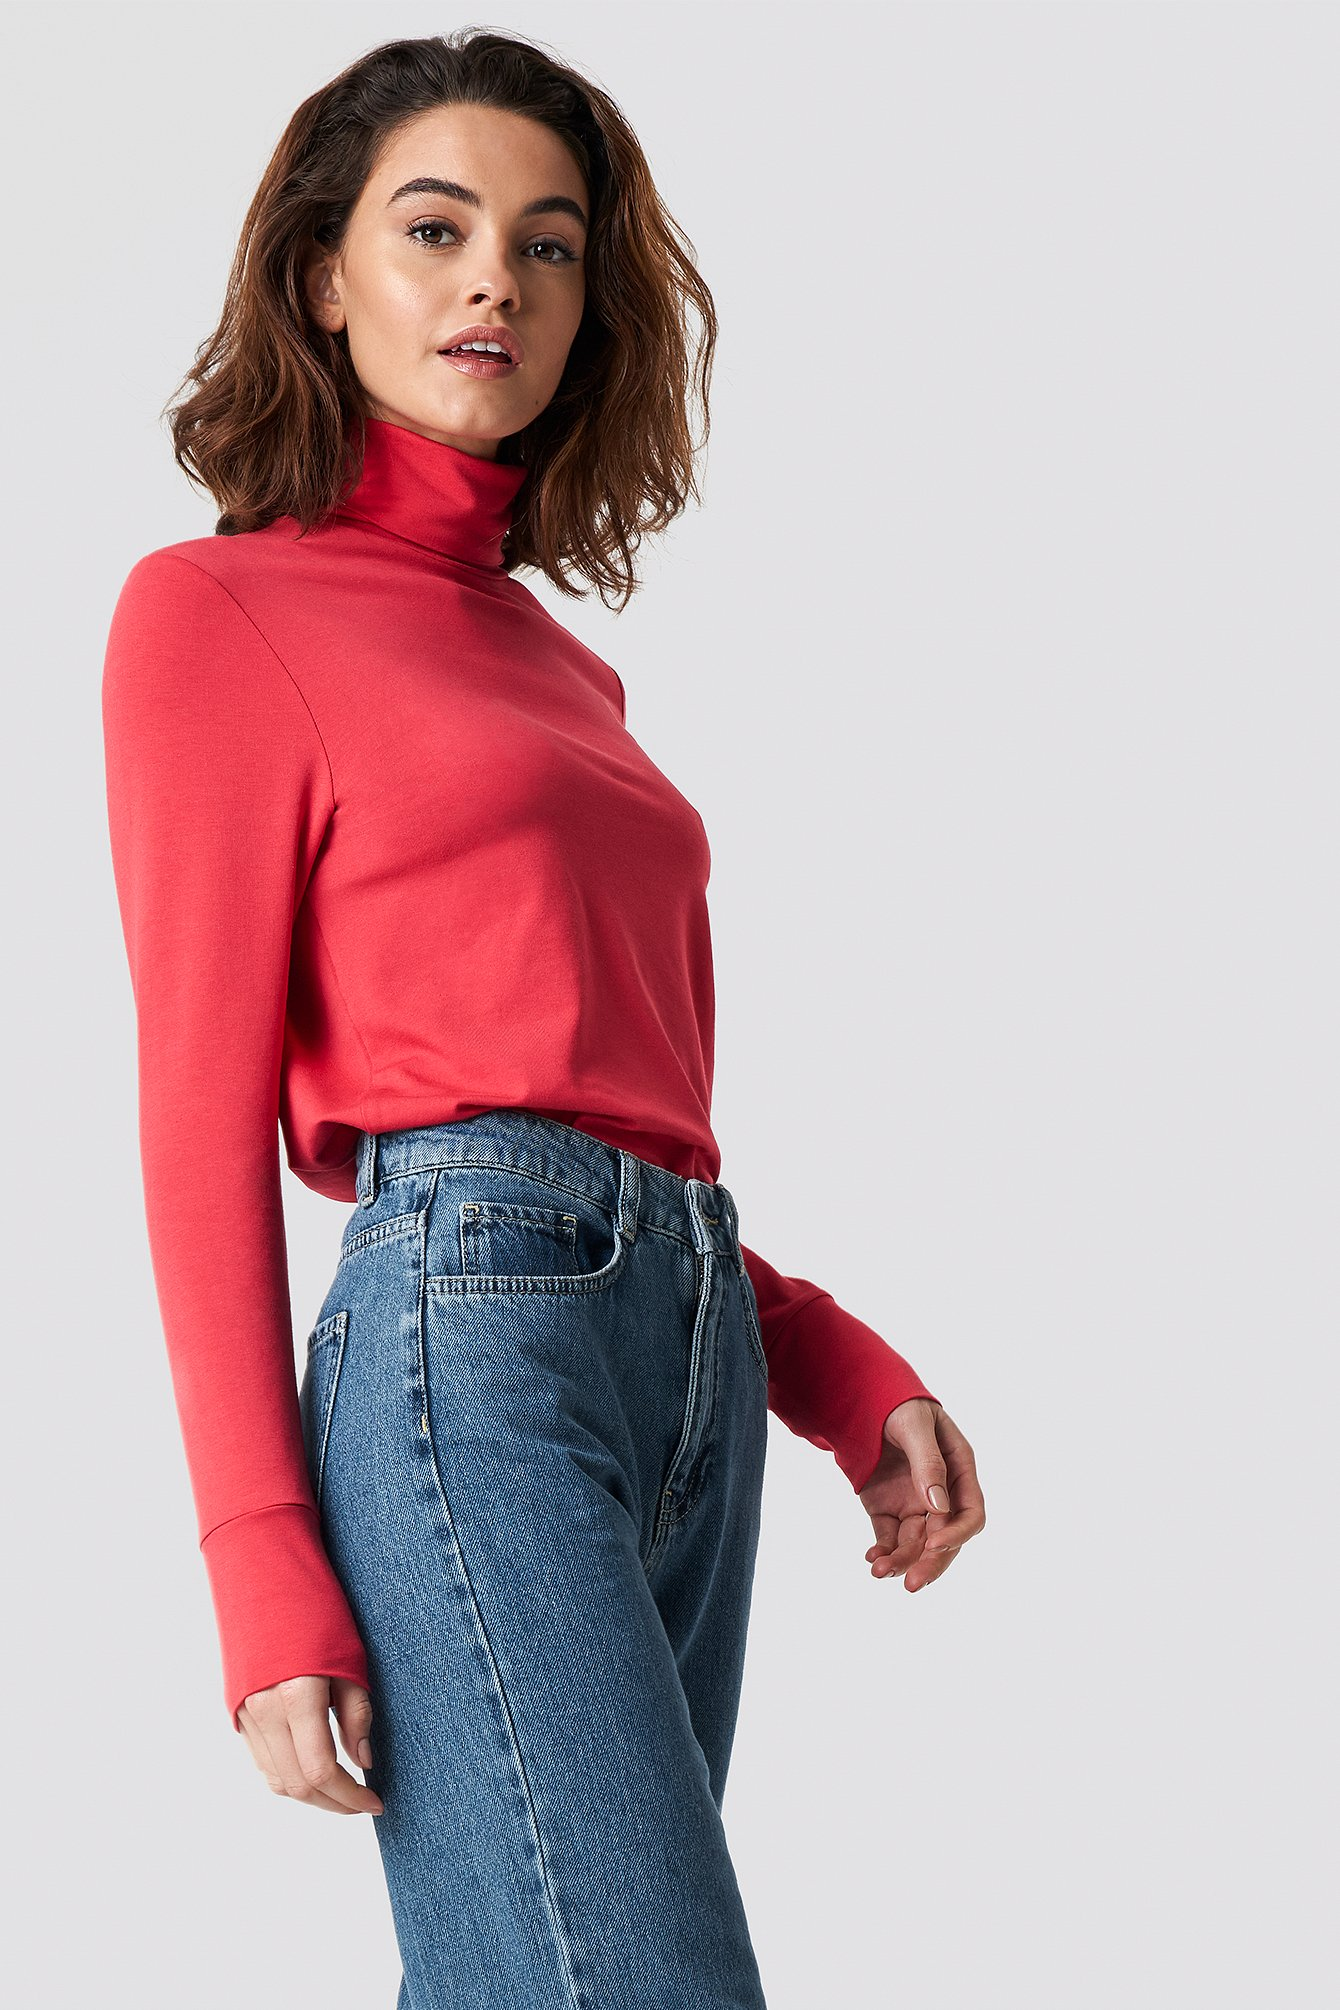 emilie briting x na-kd -  High Polo Top - Red